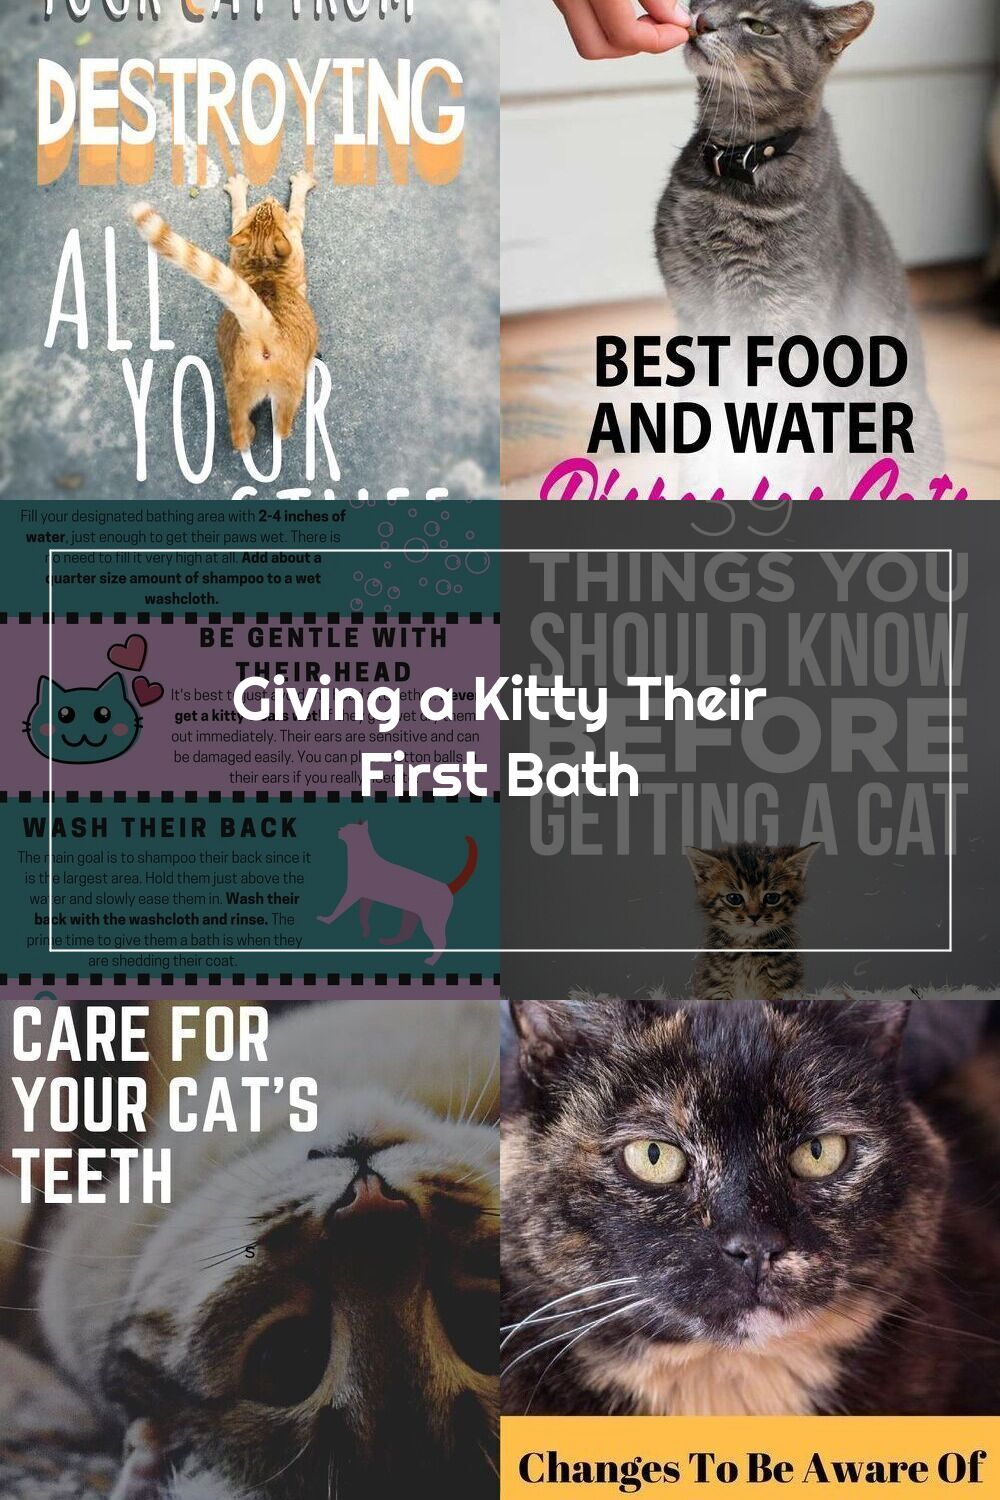 Advice And My Experience Giving Your Kitty A Bath For The First Time Kitten Bath Pet Grooming Cat Kitty Tips Advice Sham In 2020 Cat Care Tips Cat Care Kitty